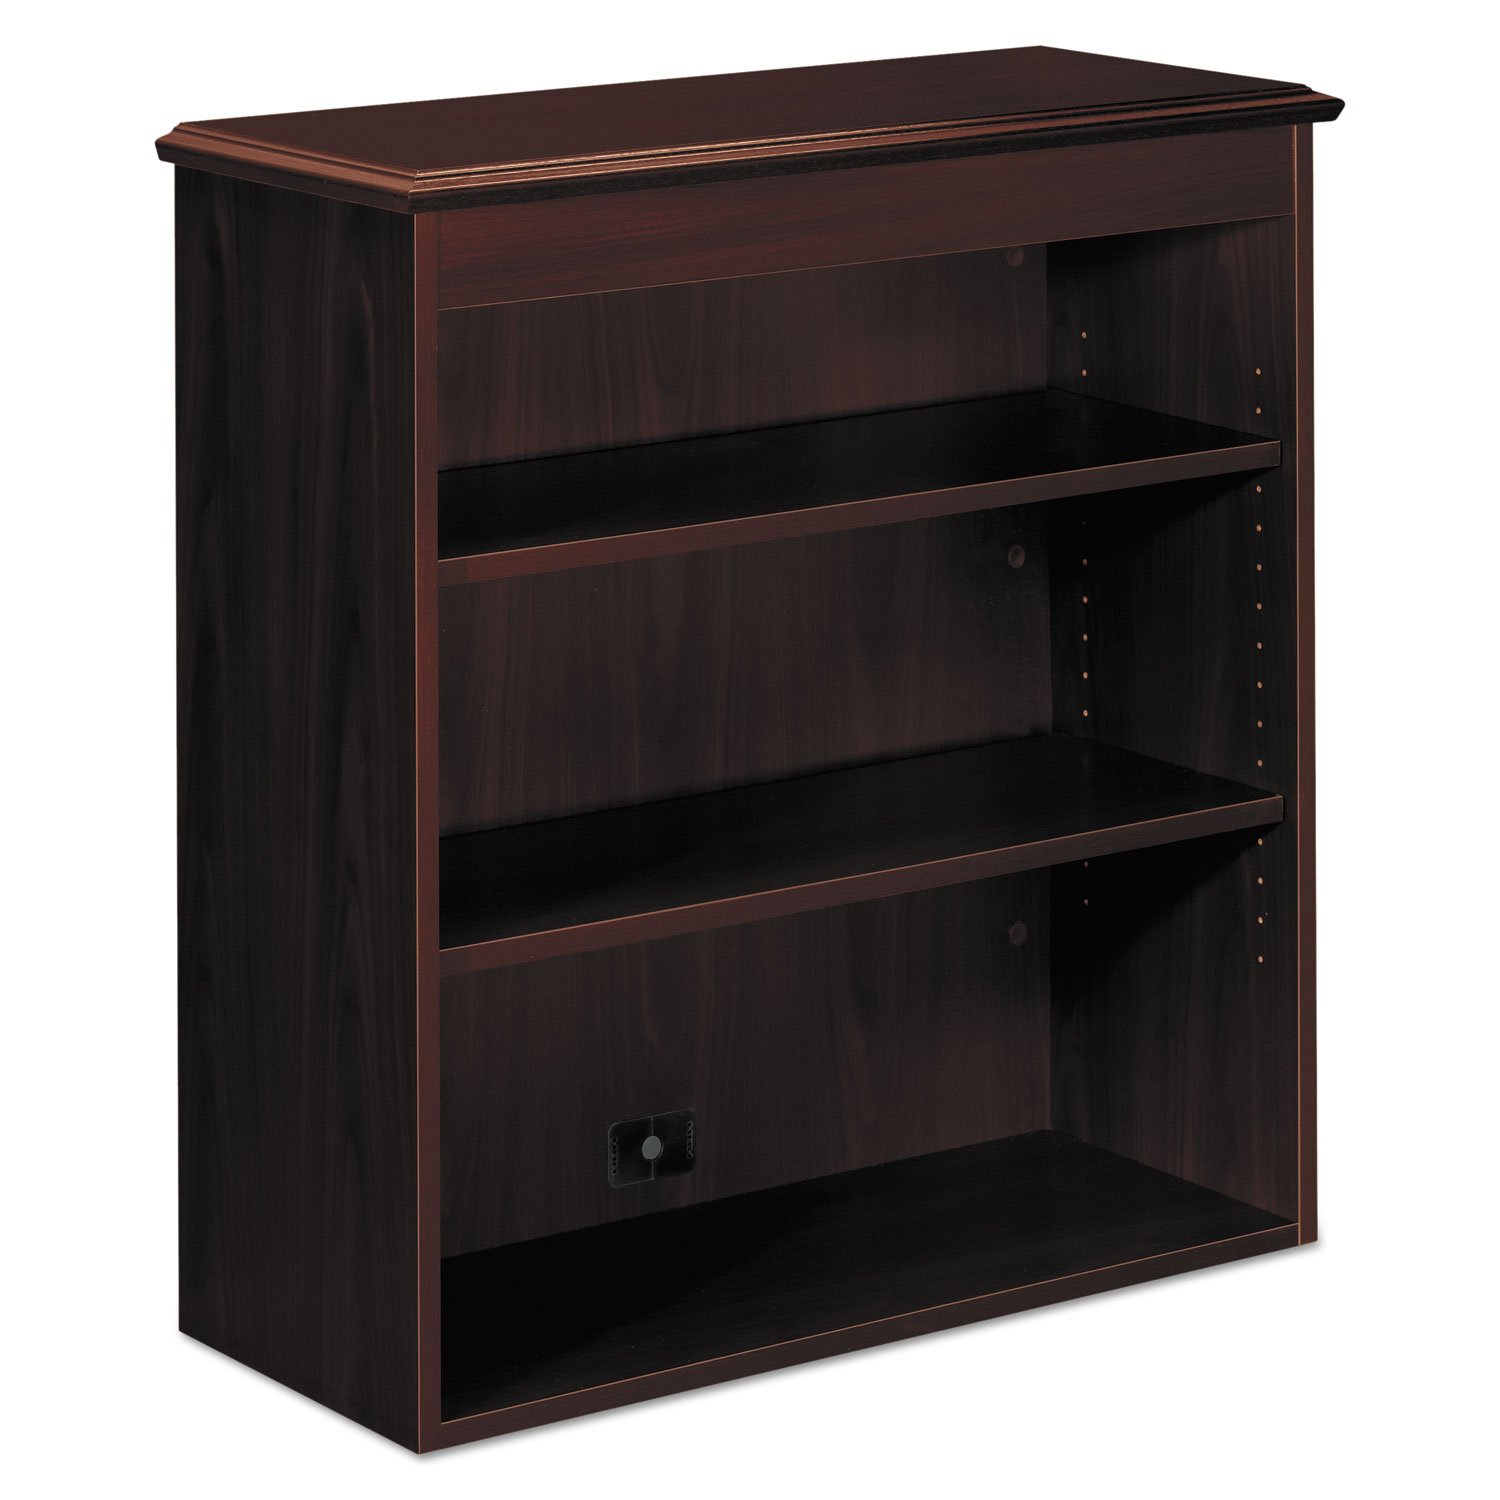 HON 94000 Series Bookcase Hutch